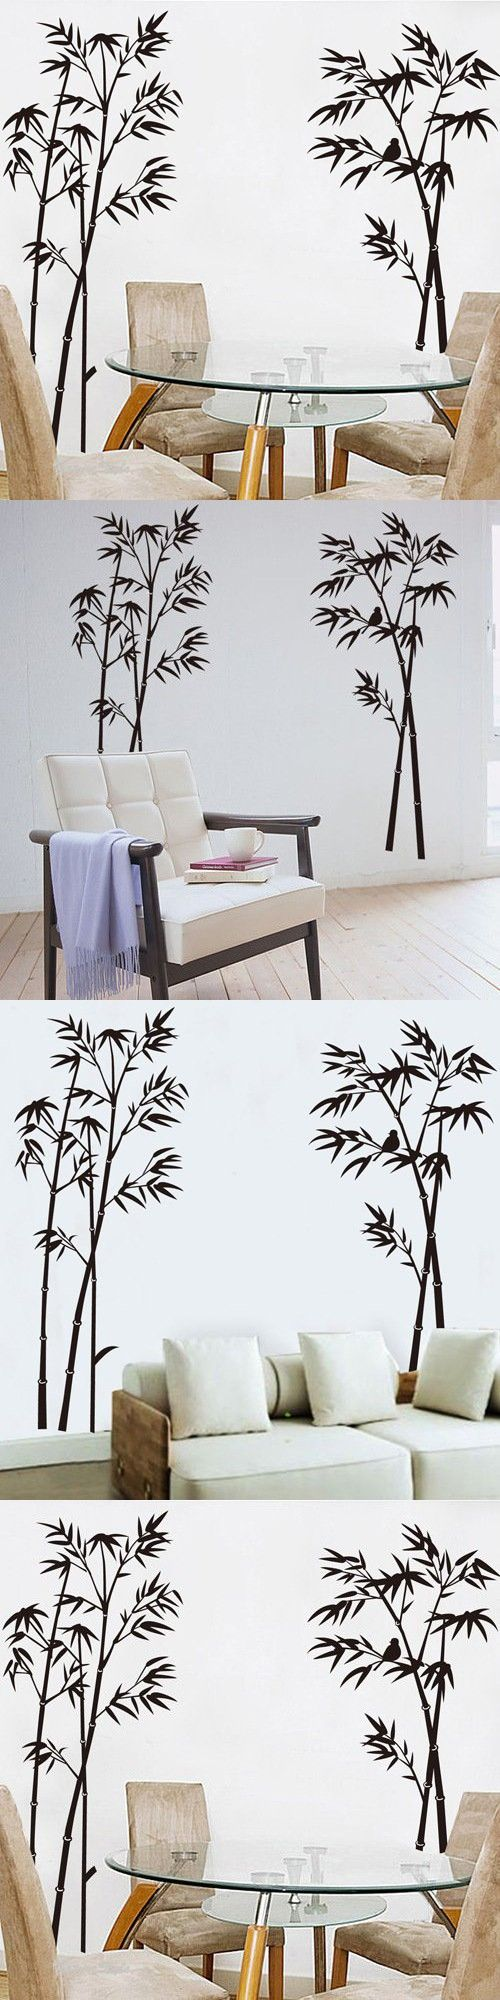 best 25 bamboo trees for sale ideas on pinterest pavers for orderin christmas gift wall decal hot sale ink and wash painting black bamboo tree birds removable